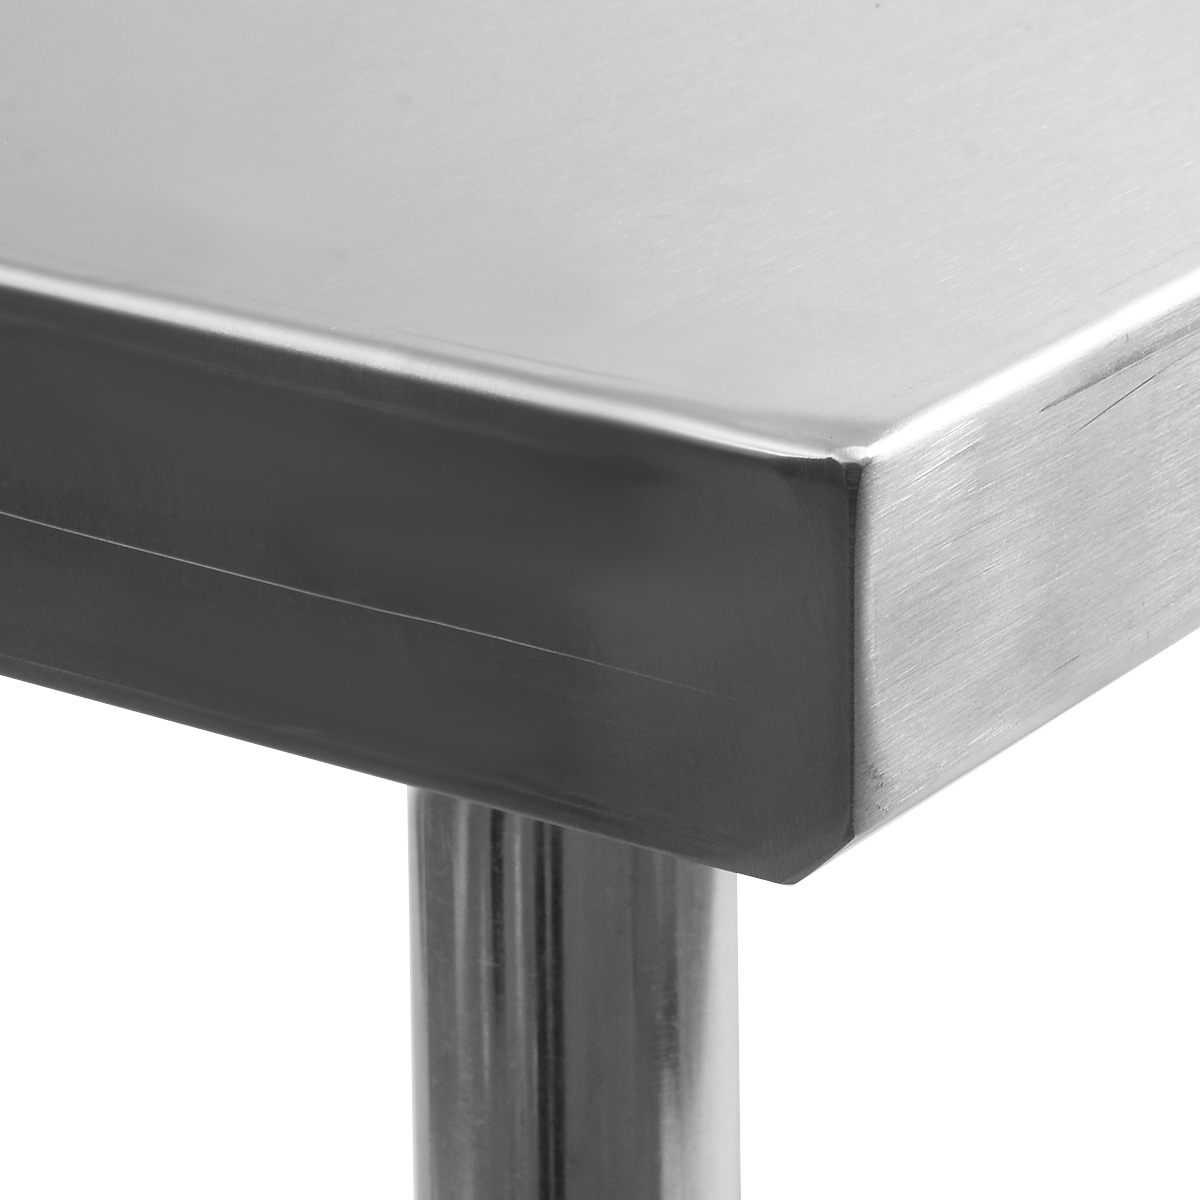 Restaurant Kitchen Work Tables costway 24'' x 48'' stainless steel work prep table with